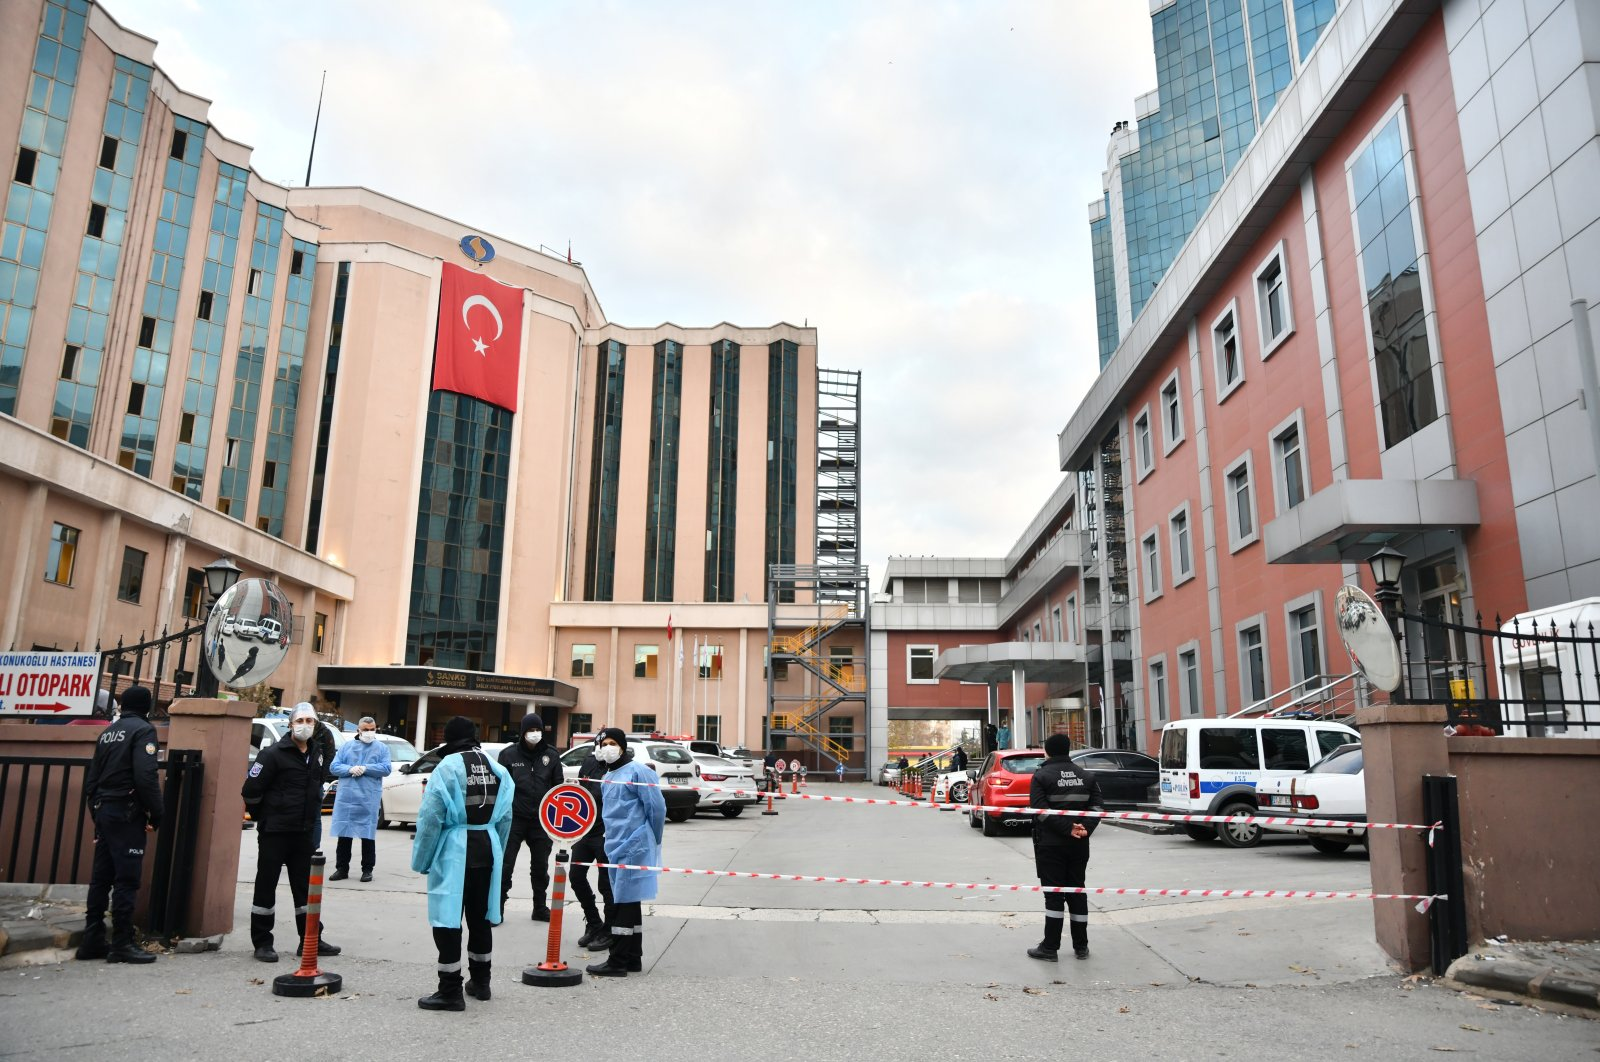 Security personnel stand in front of the SANKO University Hospital following a fire in Gaziantep, Turkey, Dec. 19, 2020. (AA Photo)